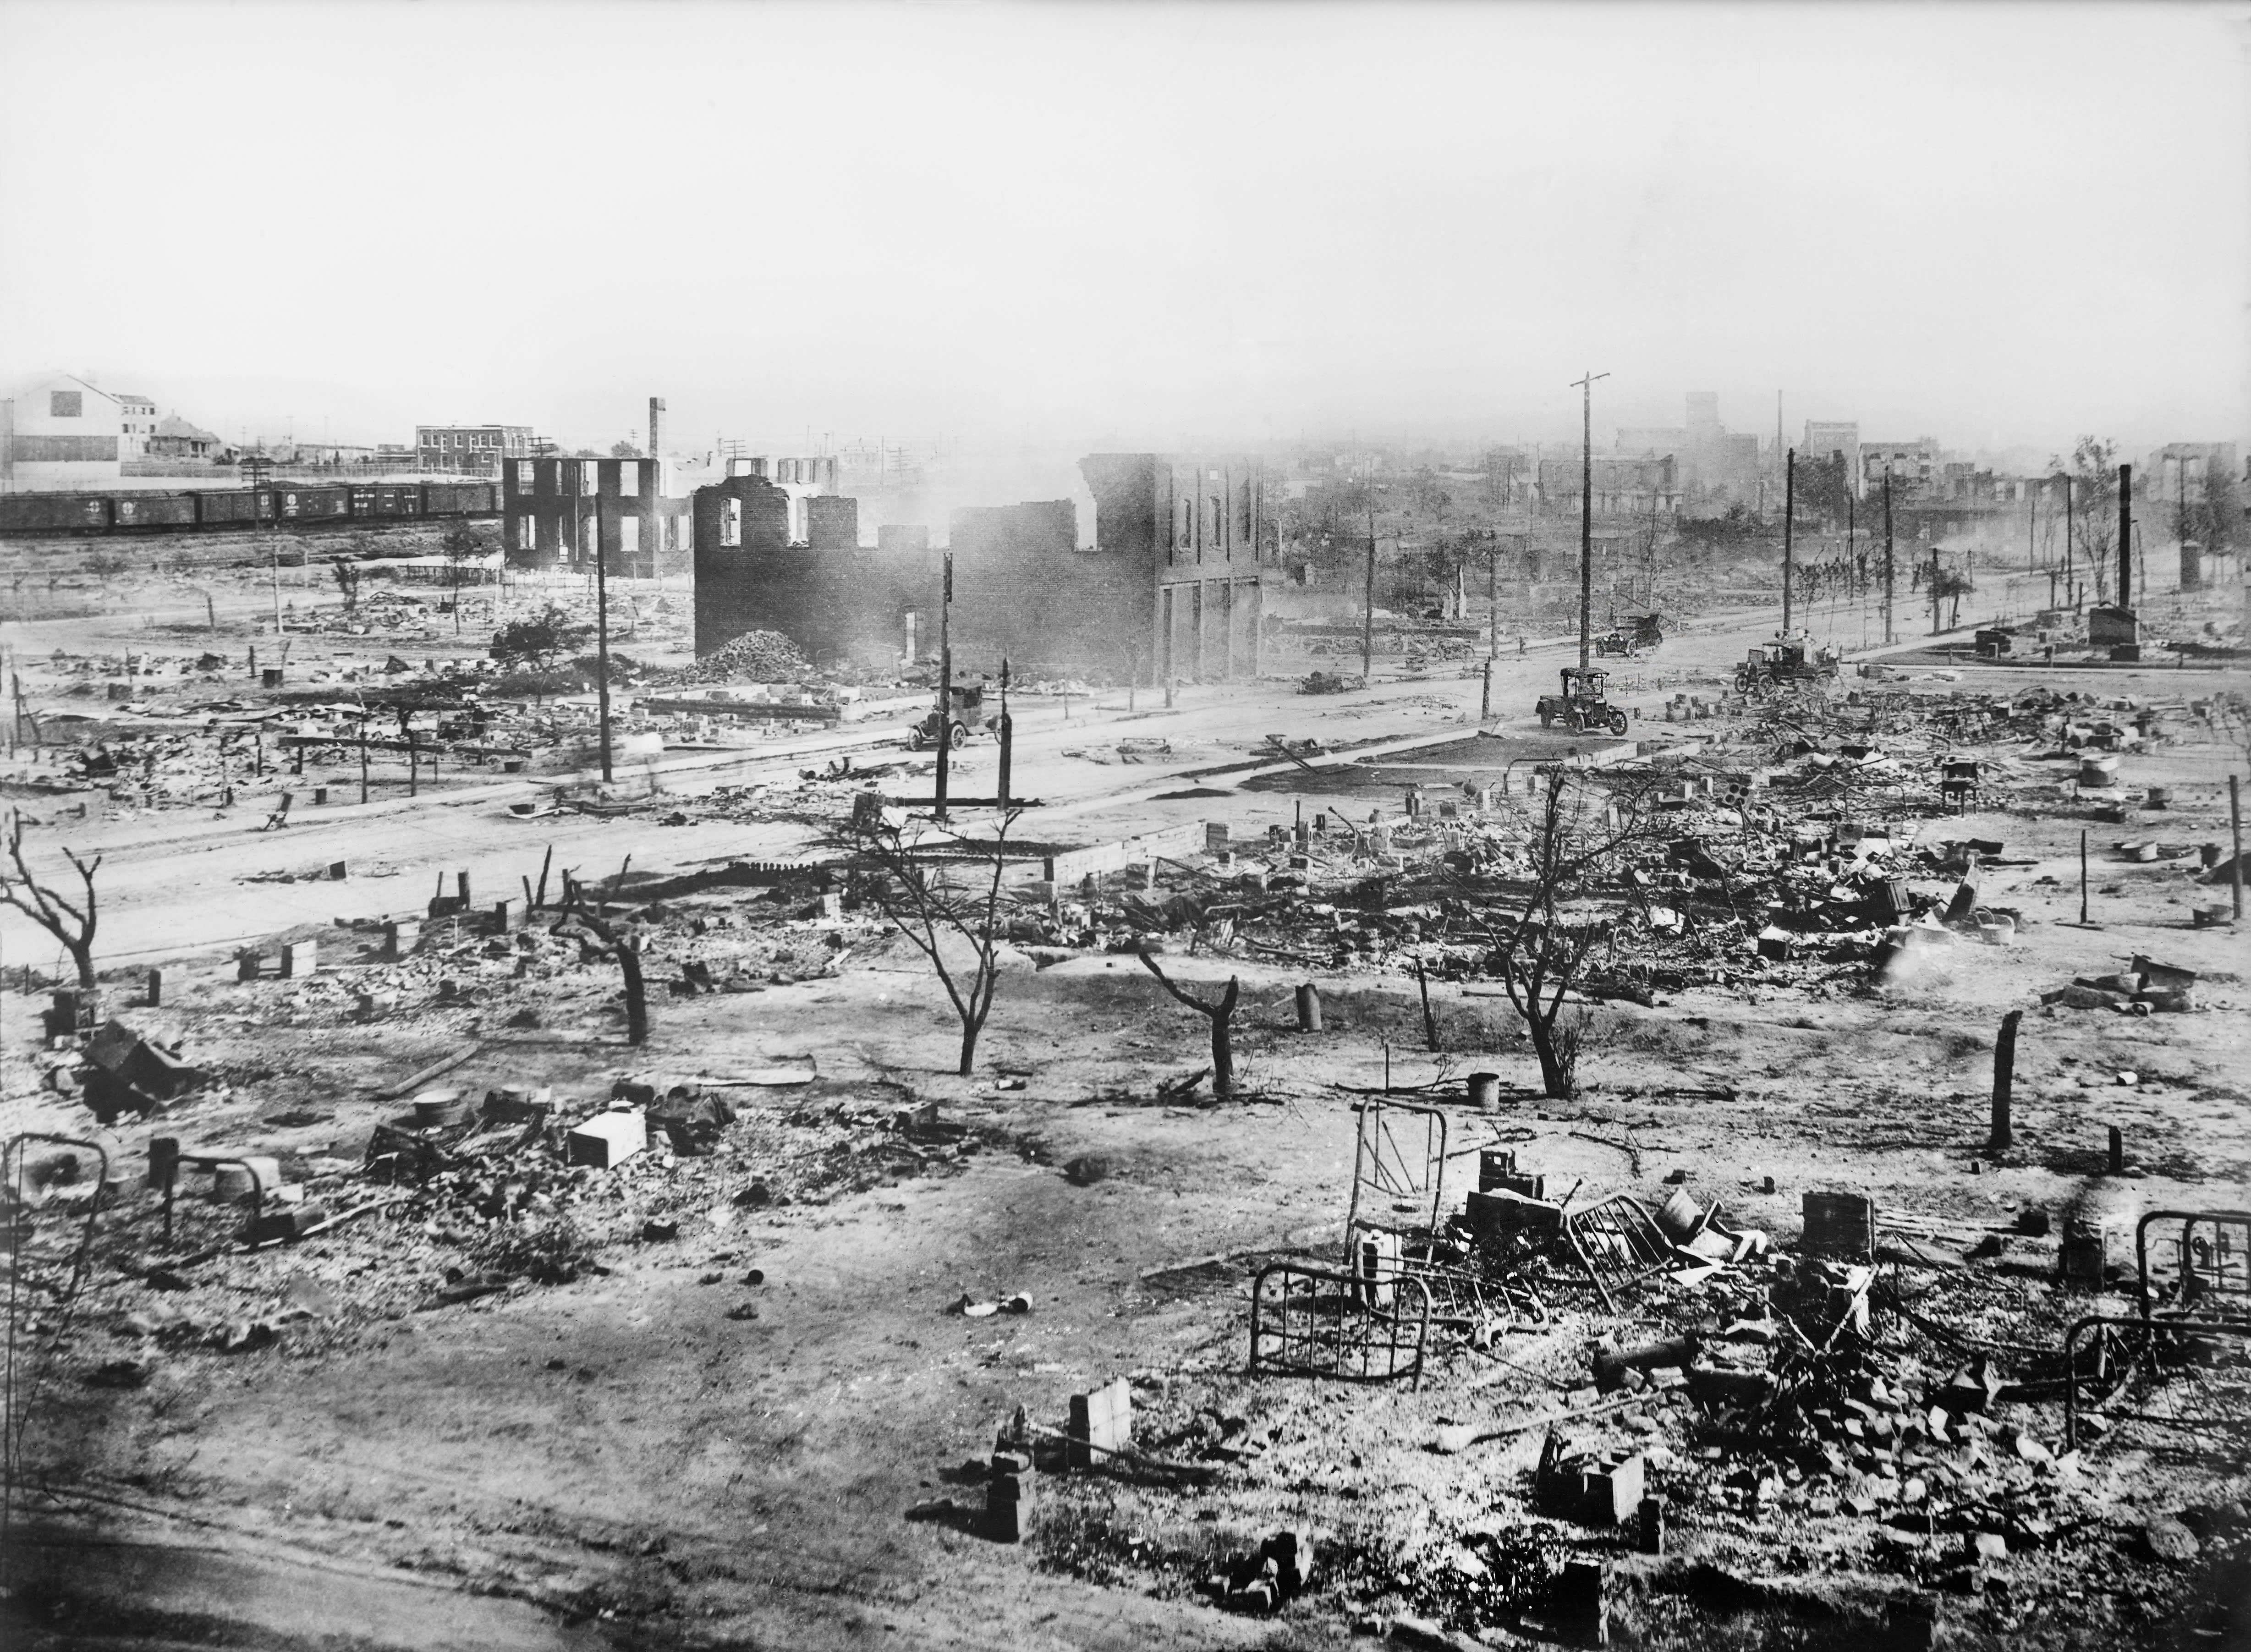 Black Wall Street was shattered 100 years ago. How the Tulsa race massacre was covered up and unearthed – CNBC